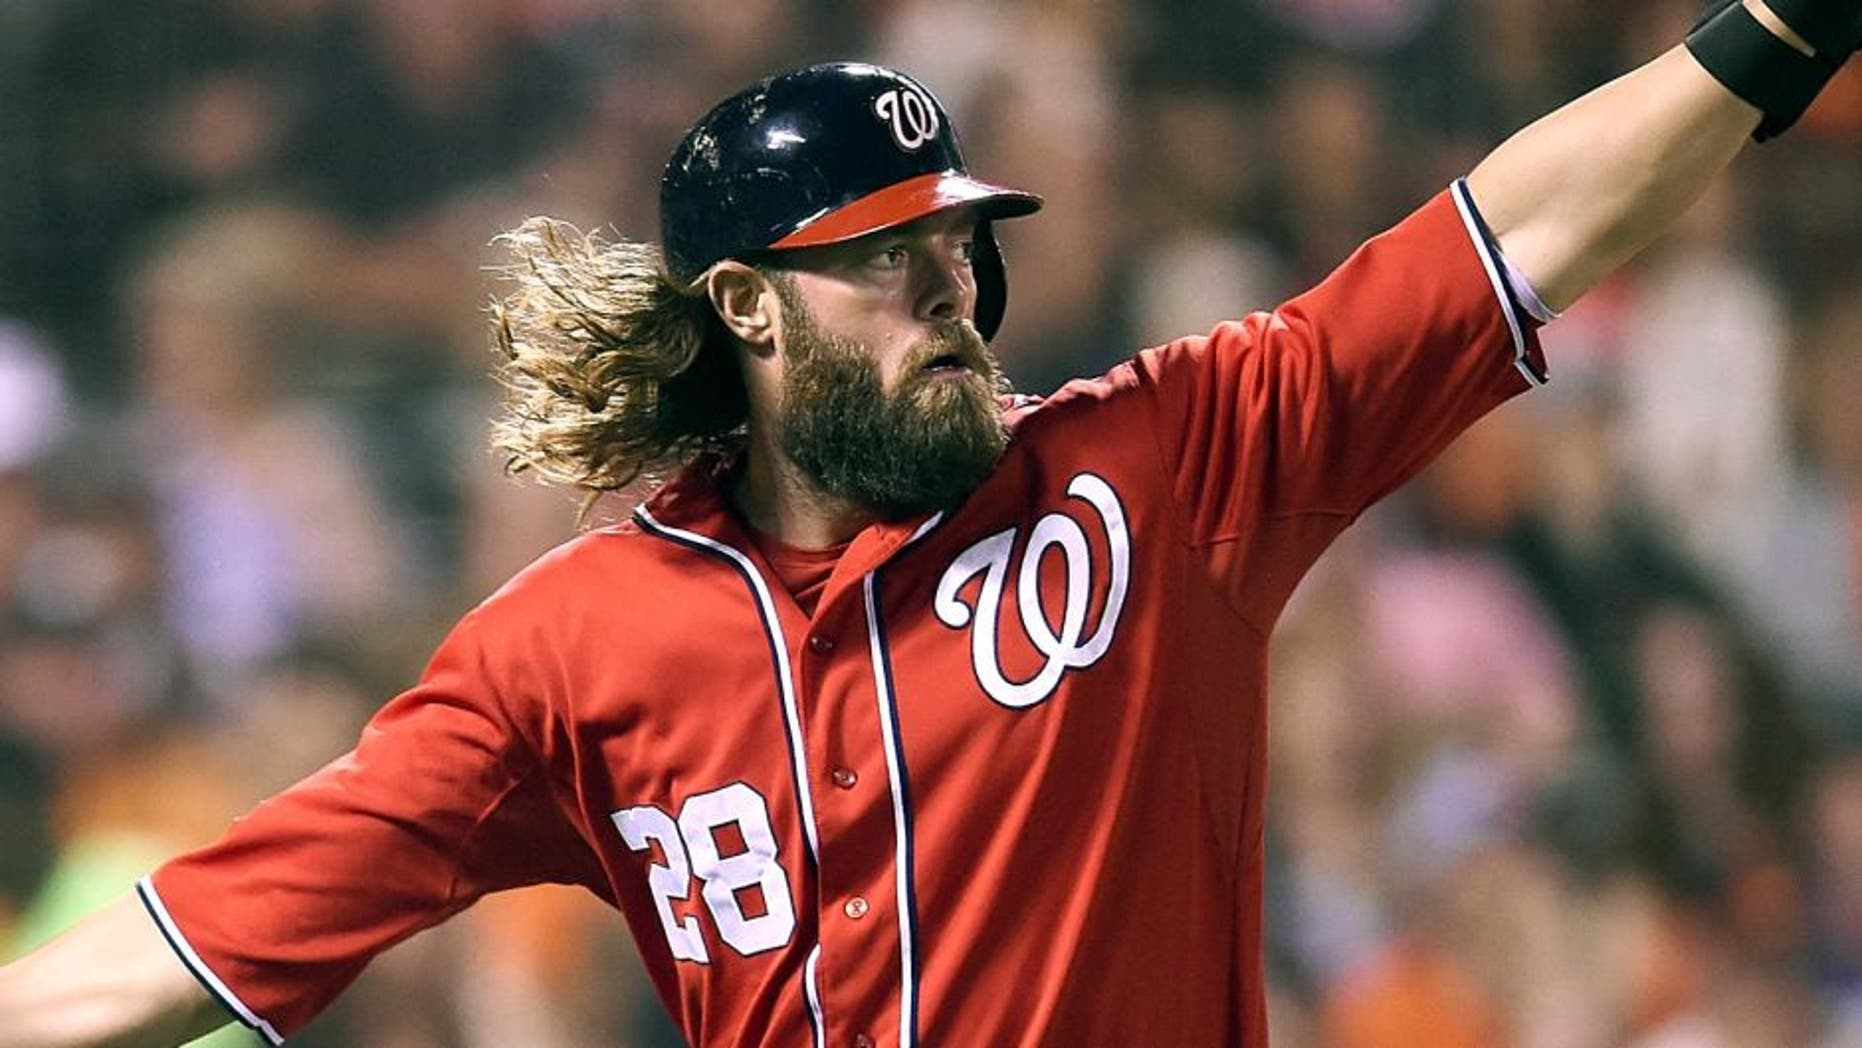 SAN FRANCISCO, CA - AUGUST 15: Jayson Werth #28 of the Washington Nationals is congratulated by Ian Desmond #20 after Werth scored against the San Francisco Giants in the top of the six inning at AT&T Park on August 15, 2015 in San Francisco, California. (Photo by Thearon W. Henderson/Getty Images)